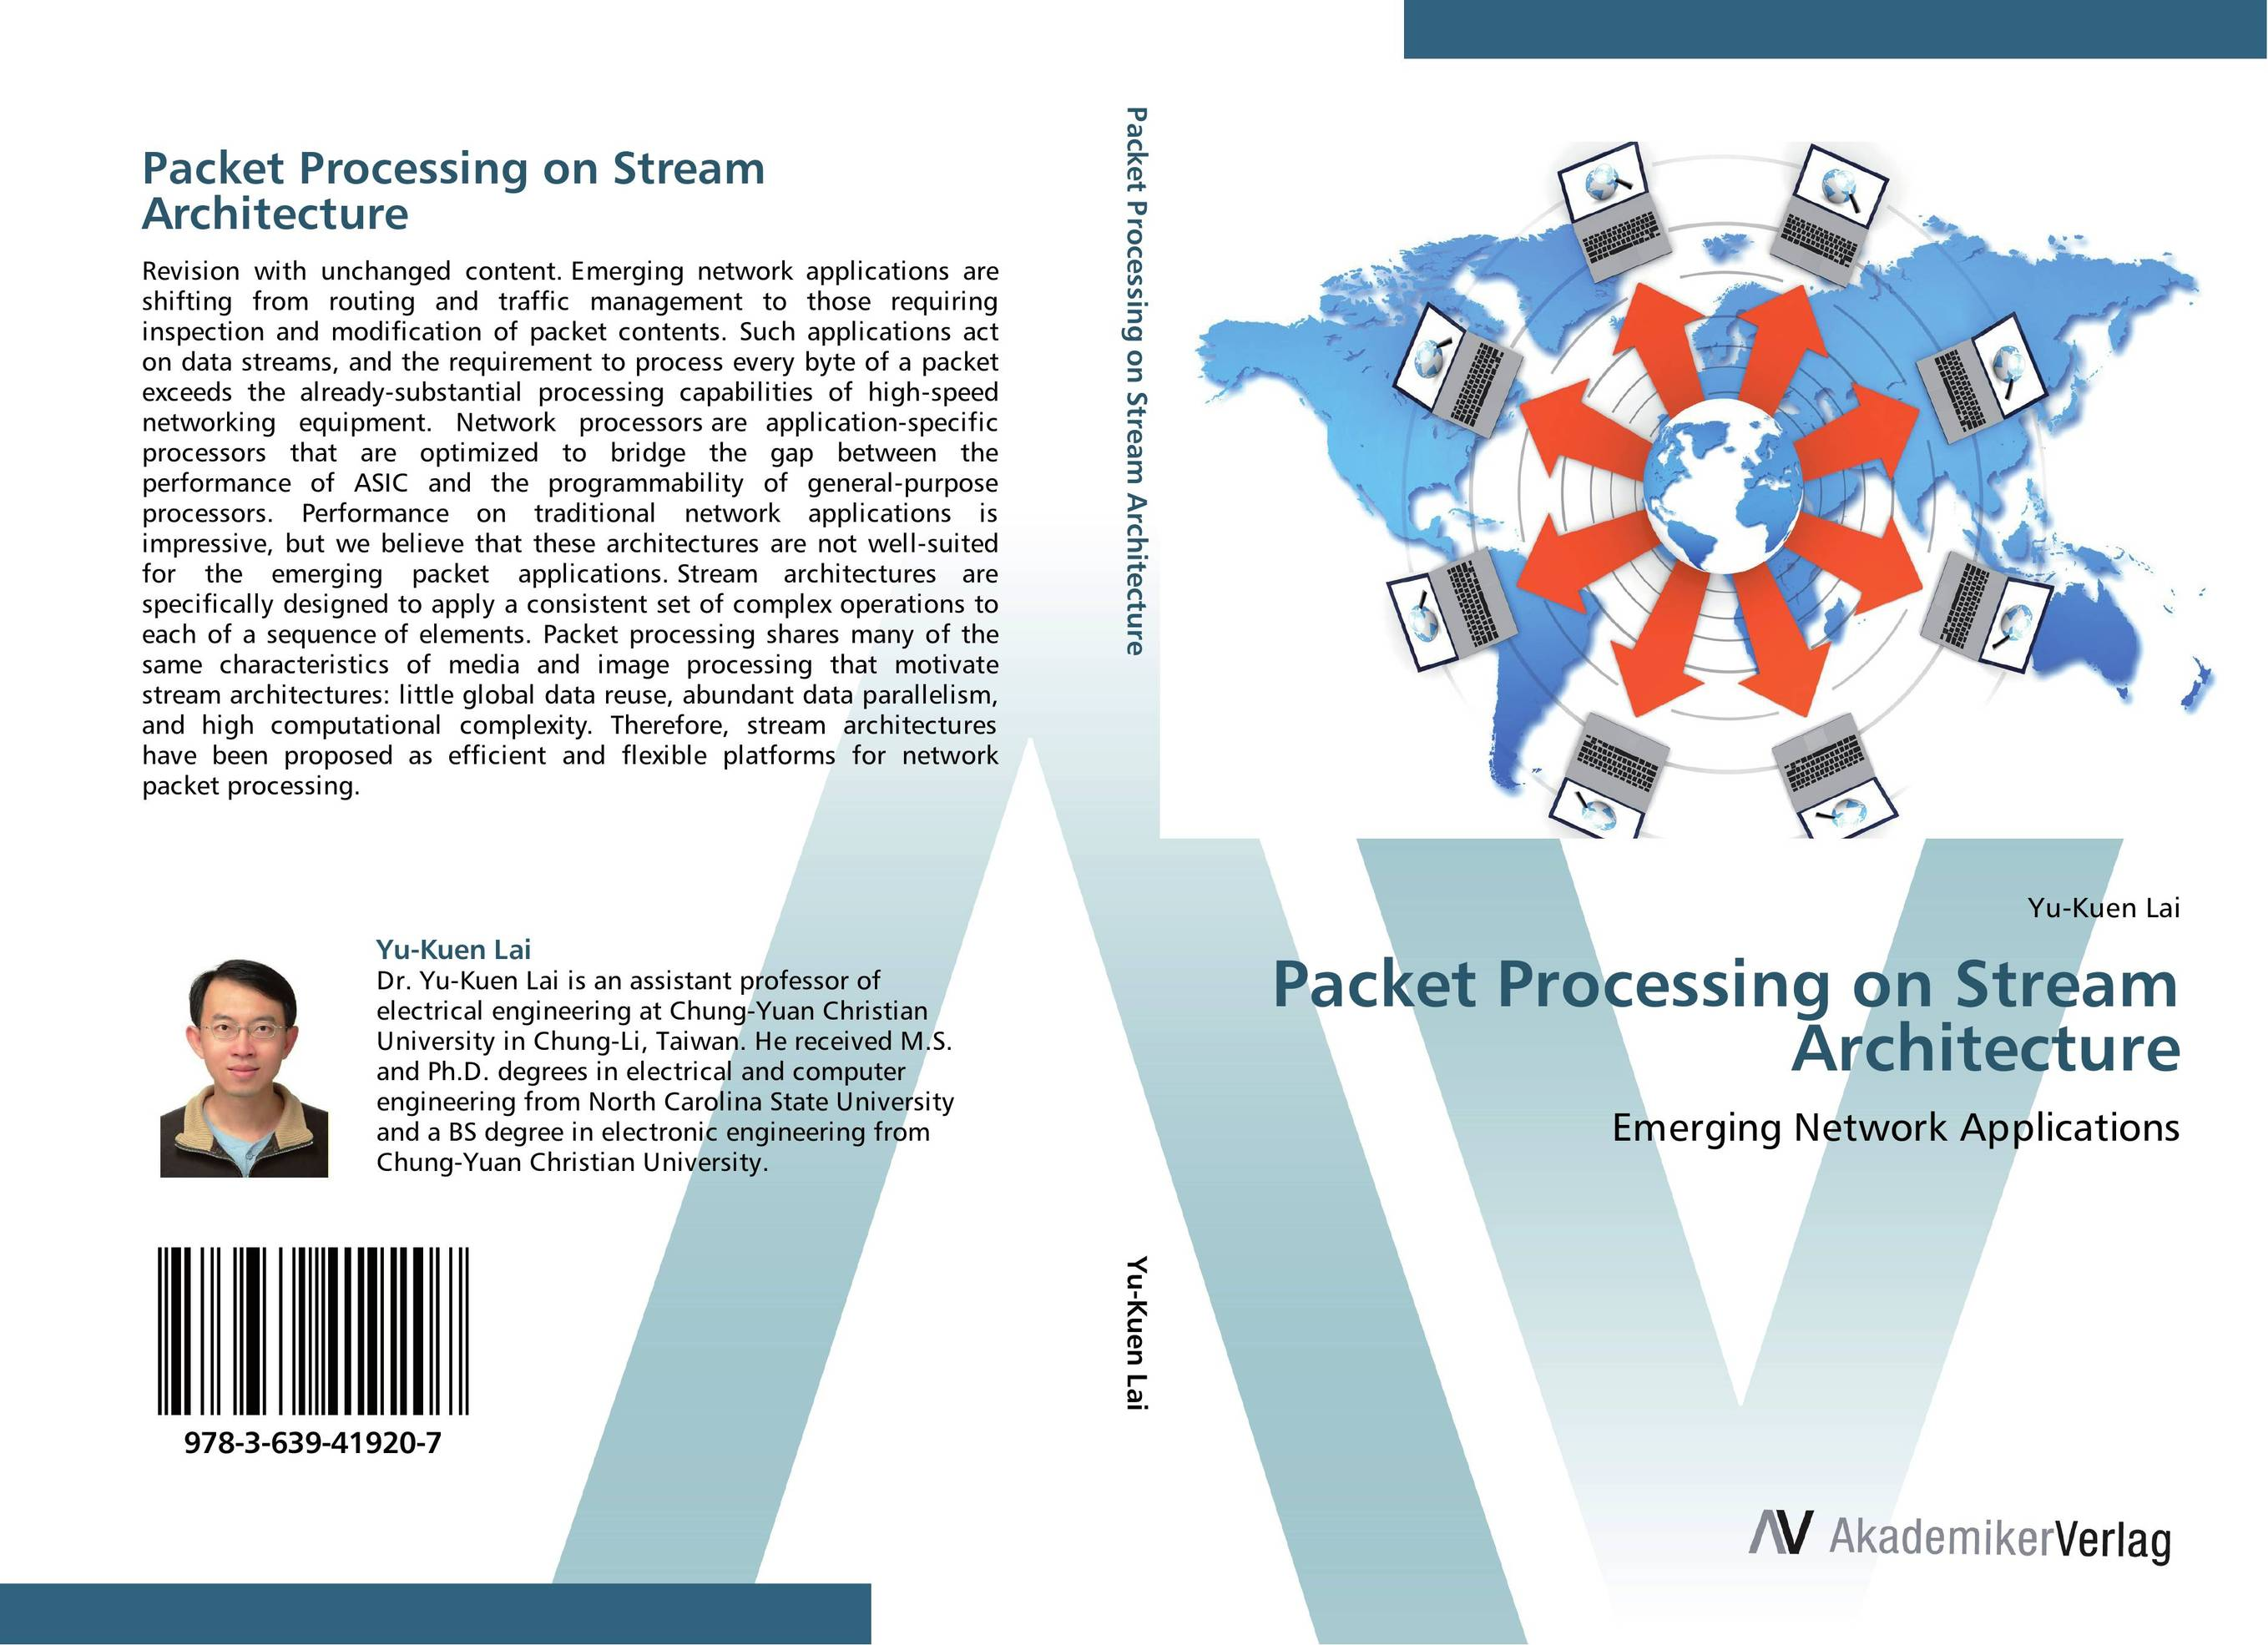 Packet Processing on Stream Architecture streams of stream classifications